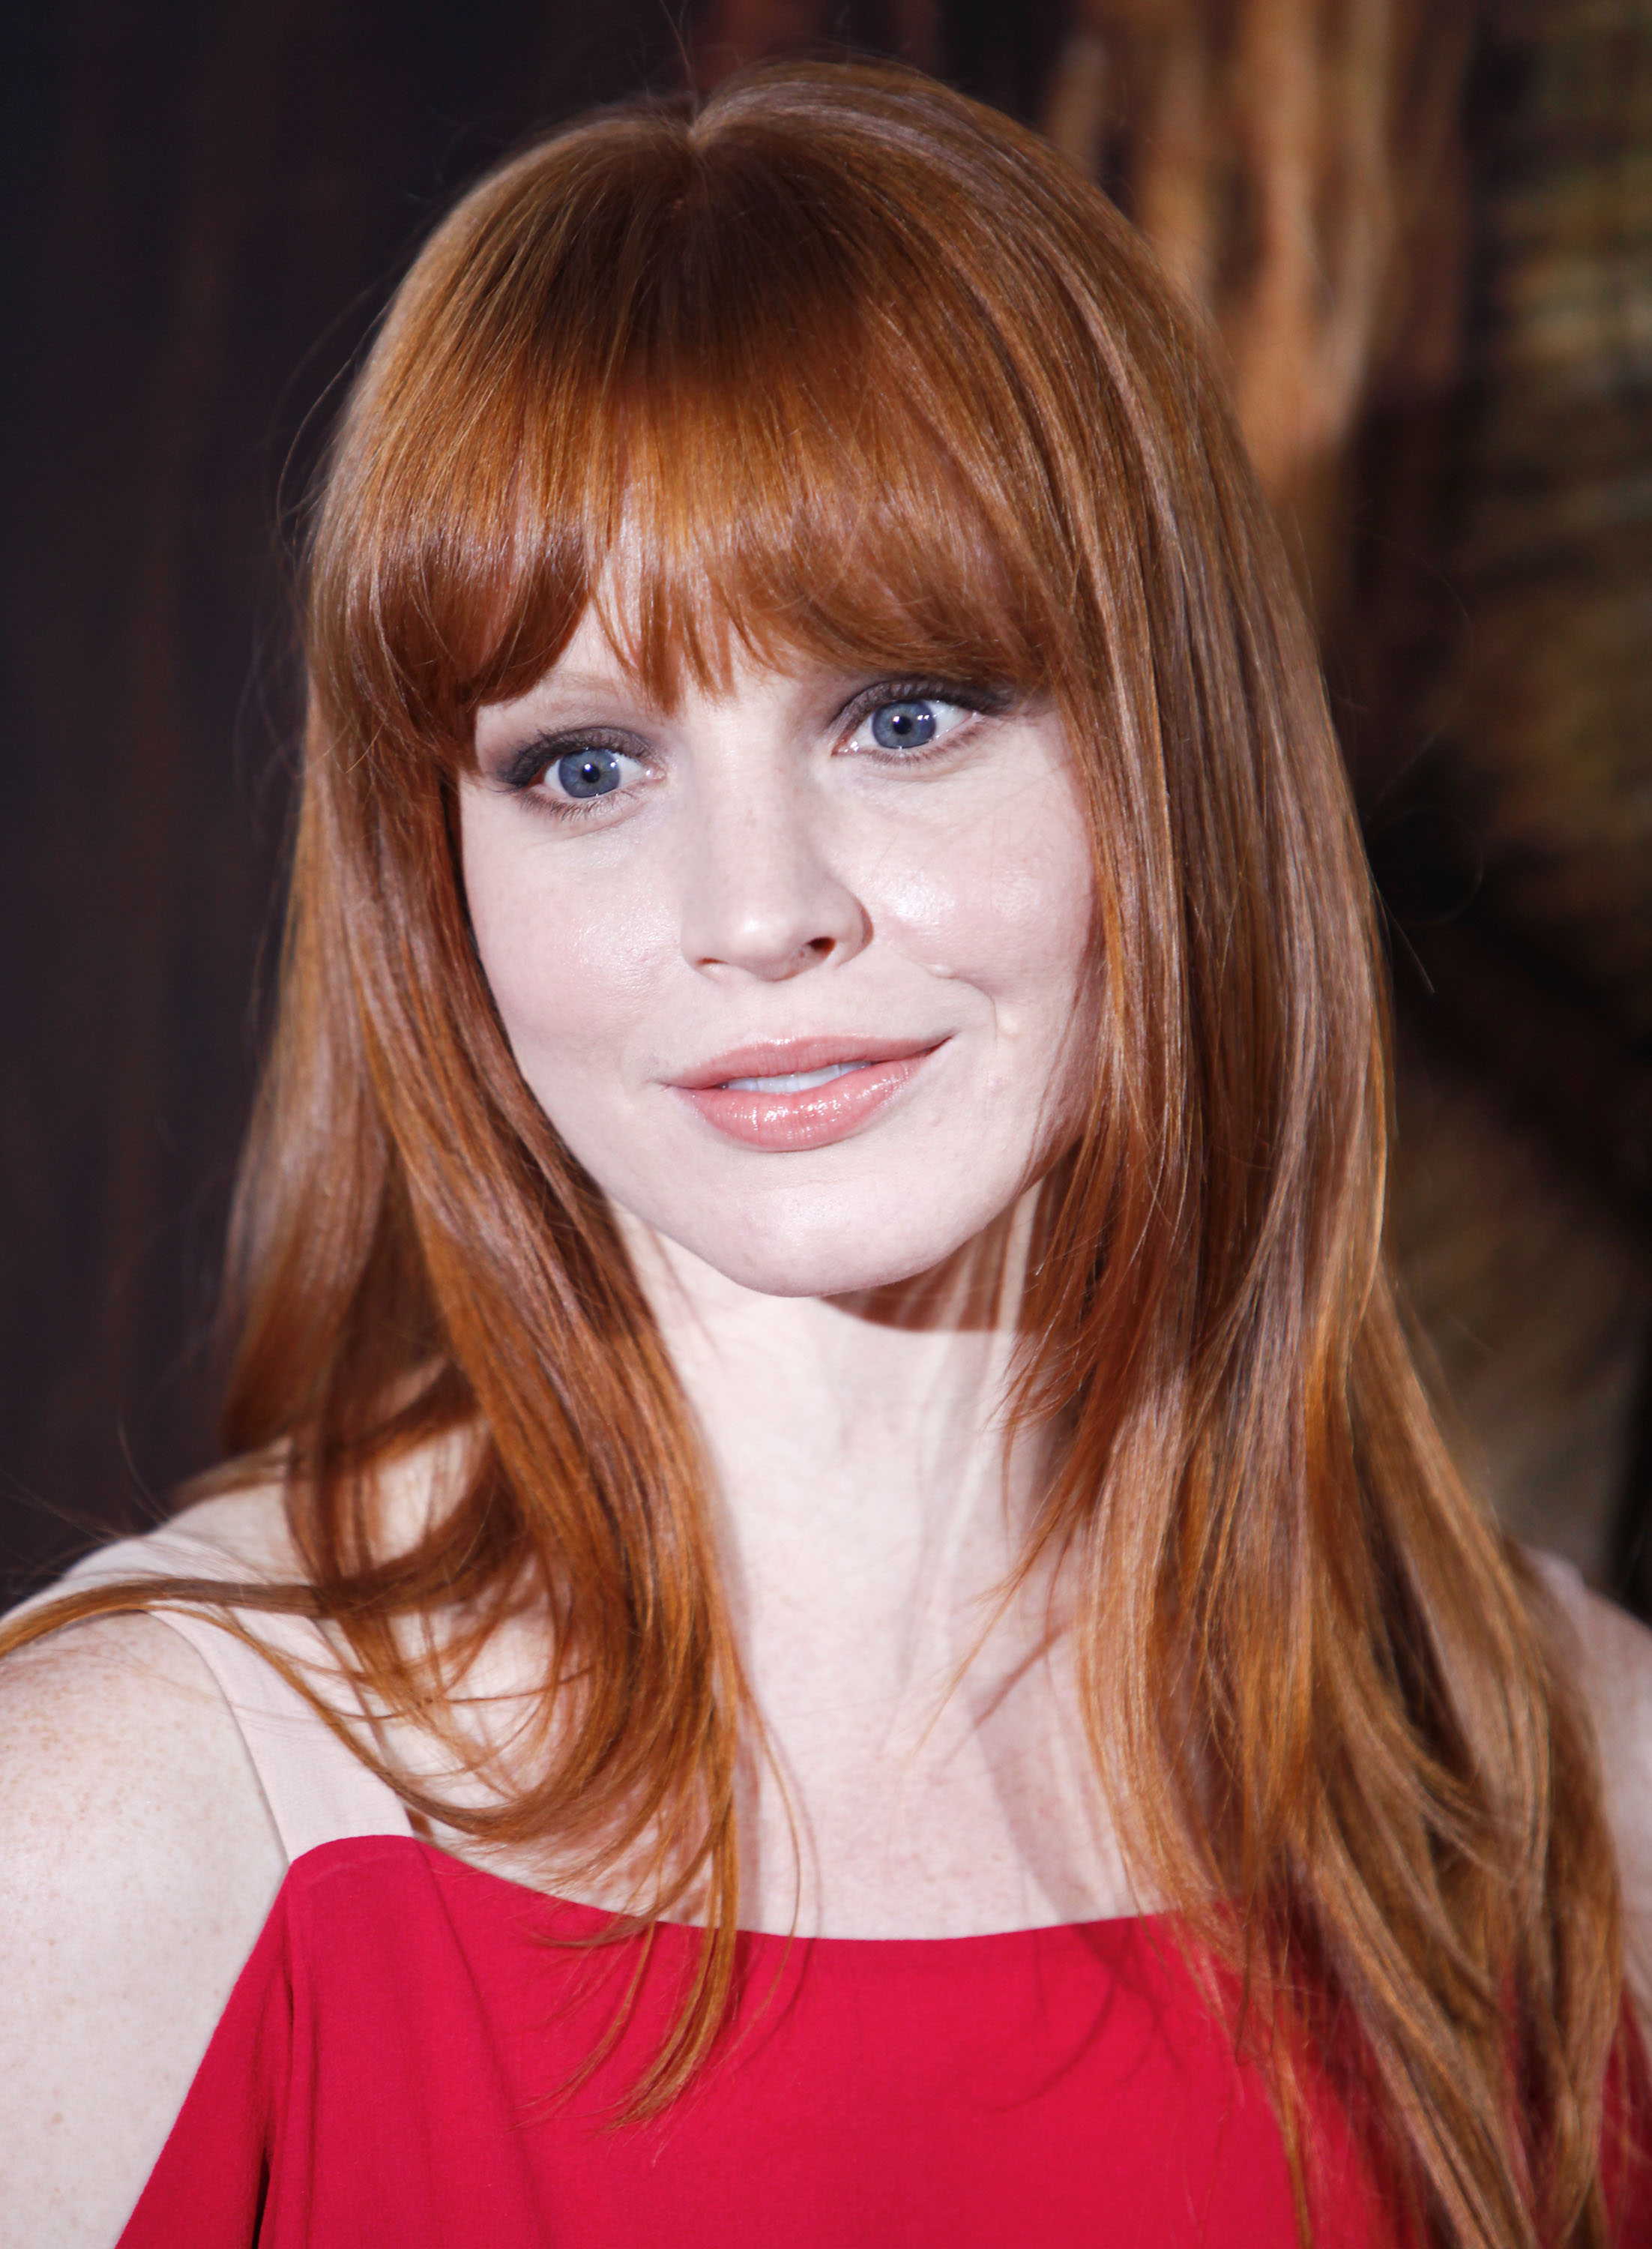 08831_Lauren_Ambrose_-_1634Where_The_Wild_Things_Are2300_New_York_Premiere_-_13_october_2009_03_122_508lo